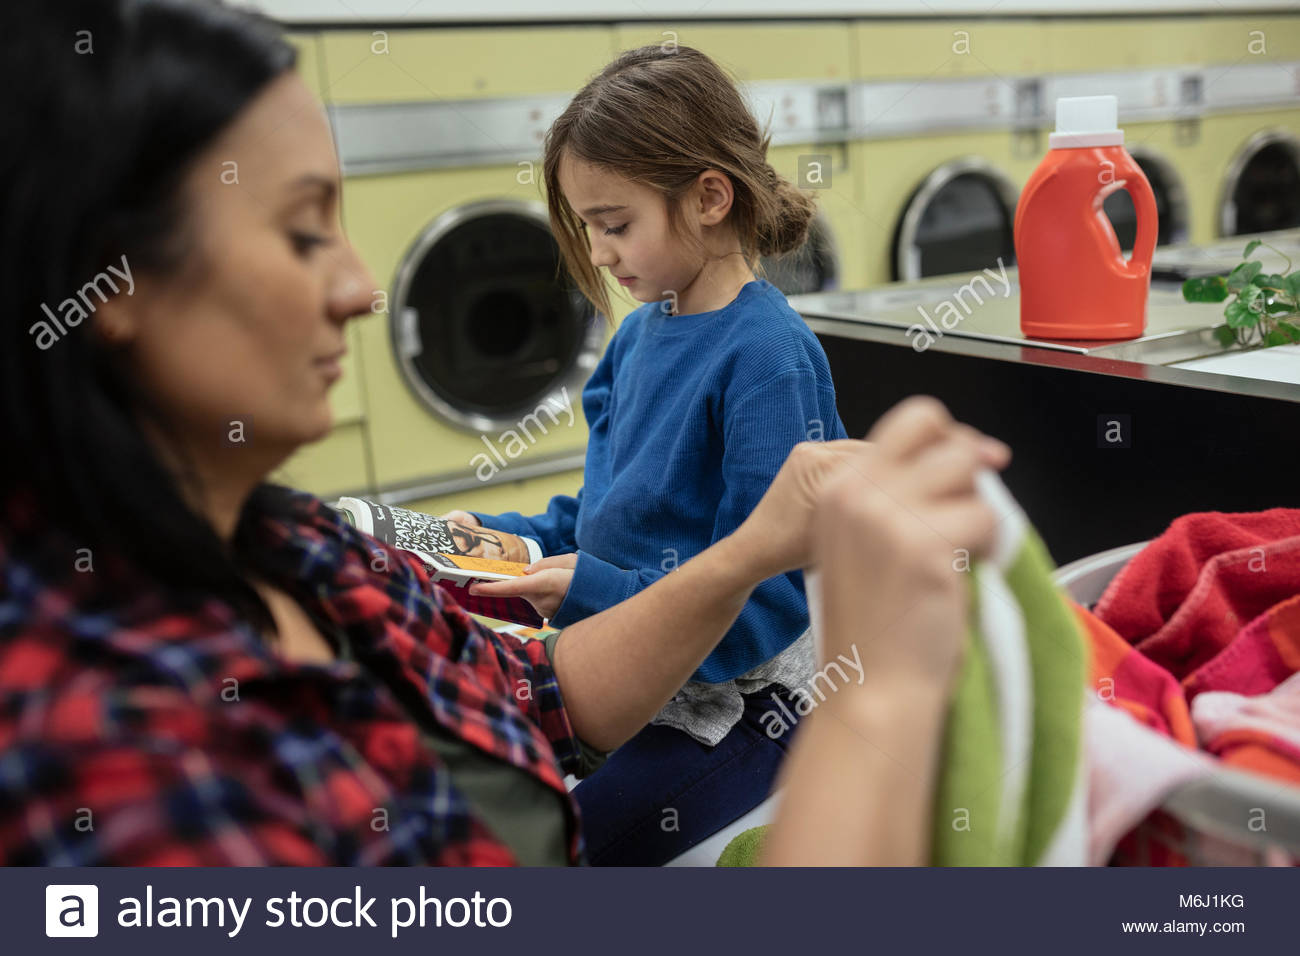 Mother and daughter doing laundry at laundromat - Stock Image